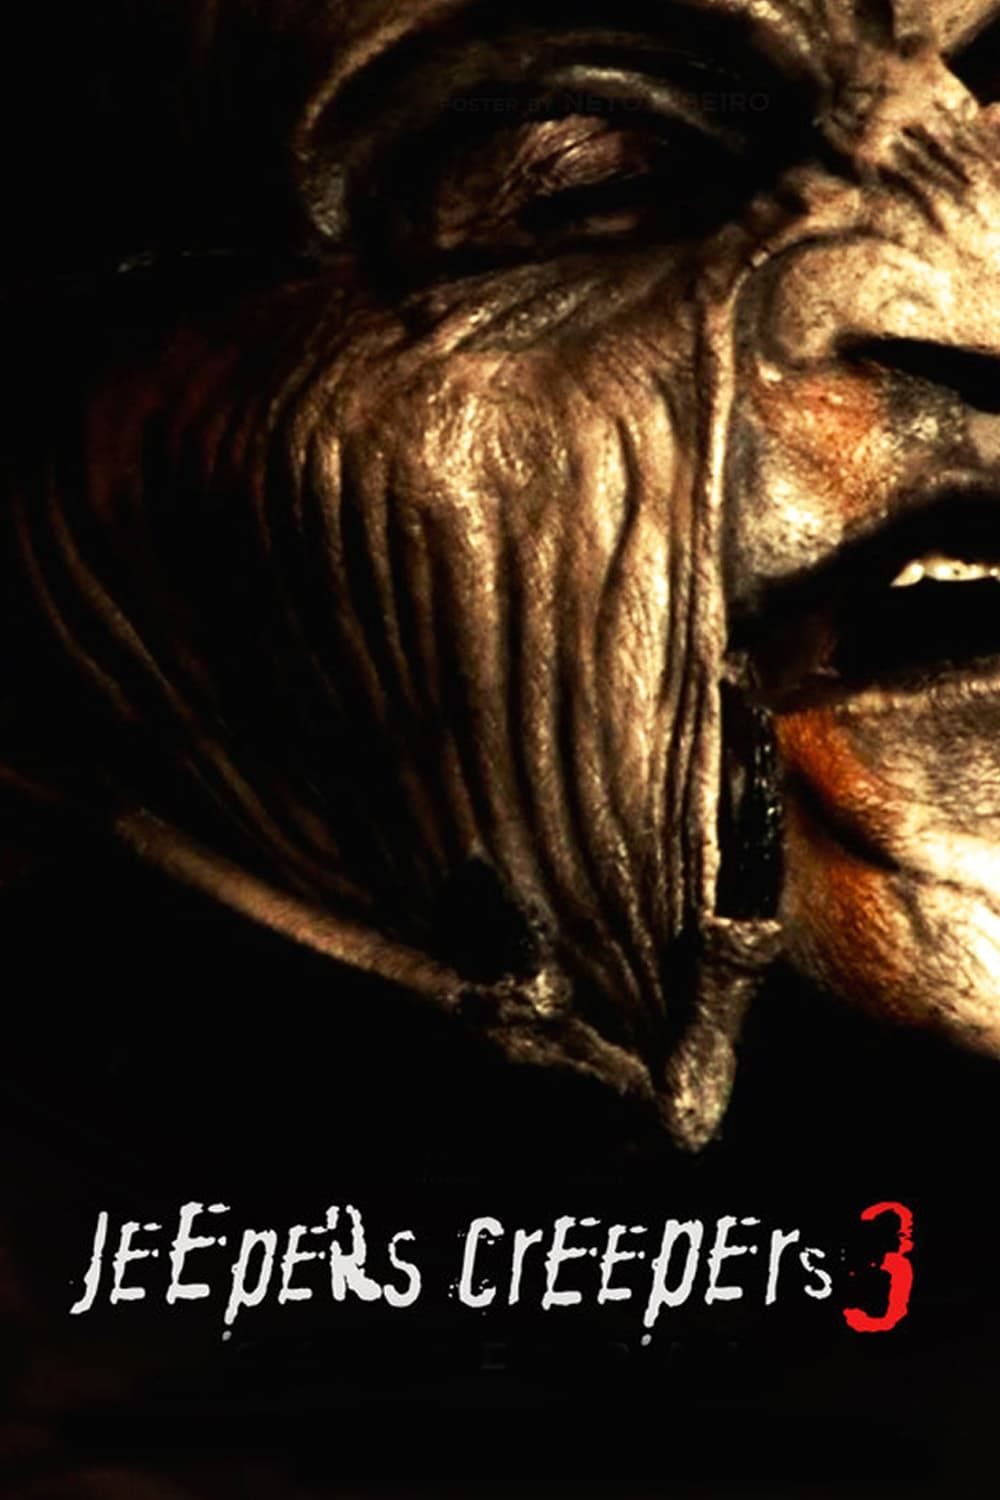 Jeepers Creepers 3 full movie Streaming Online In Hd 720p